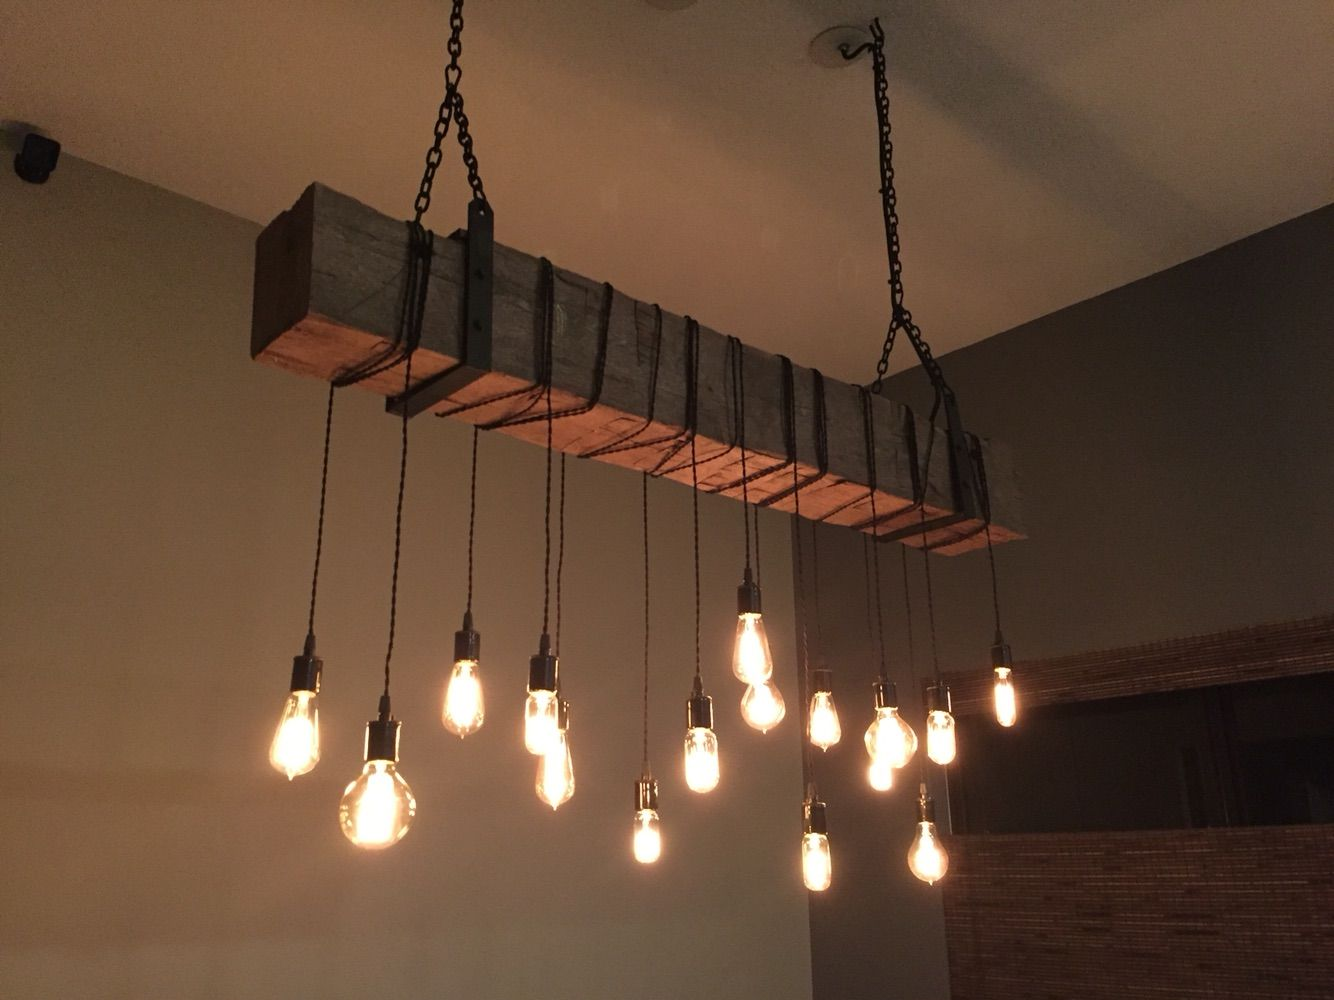 Buy a custom reclaimed barn beam chandelier light fixture modern buy a custom reclaimed barn beam chandelier light fixture modern industrial rustic restaurant bar lighting made to order from 7m woodworking arubaitofo Image collections